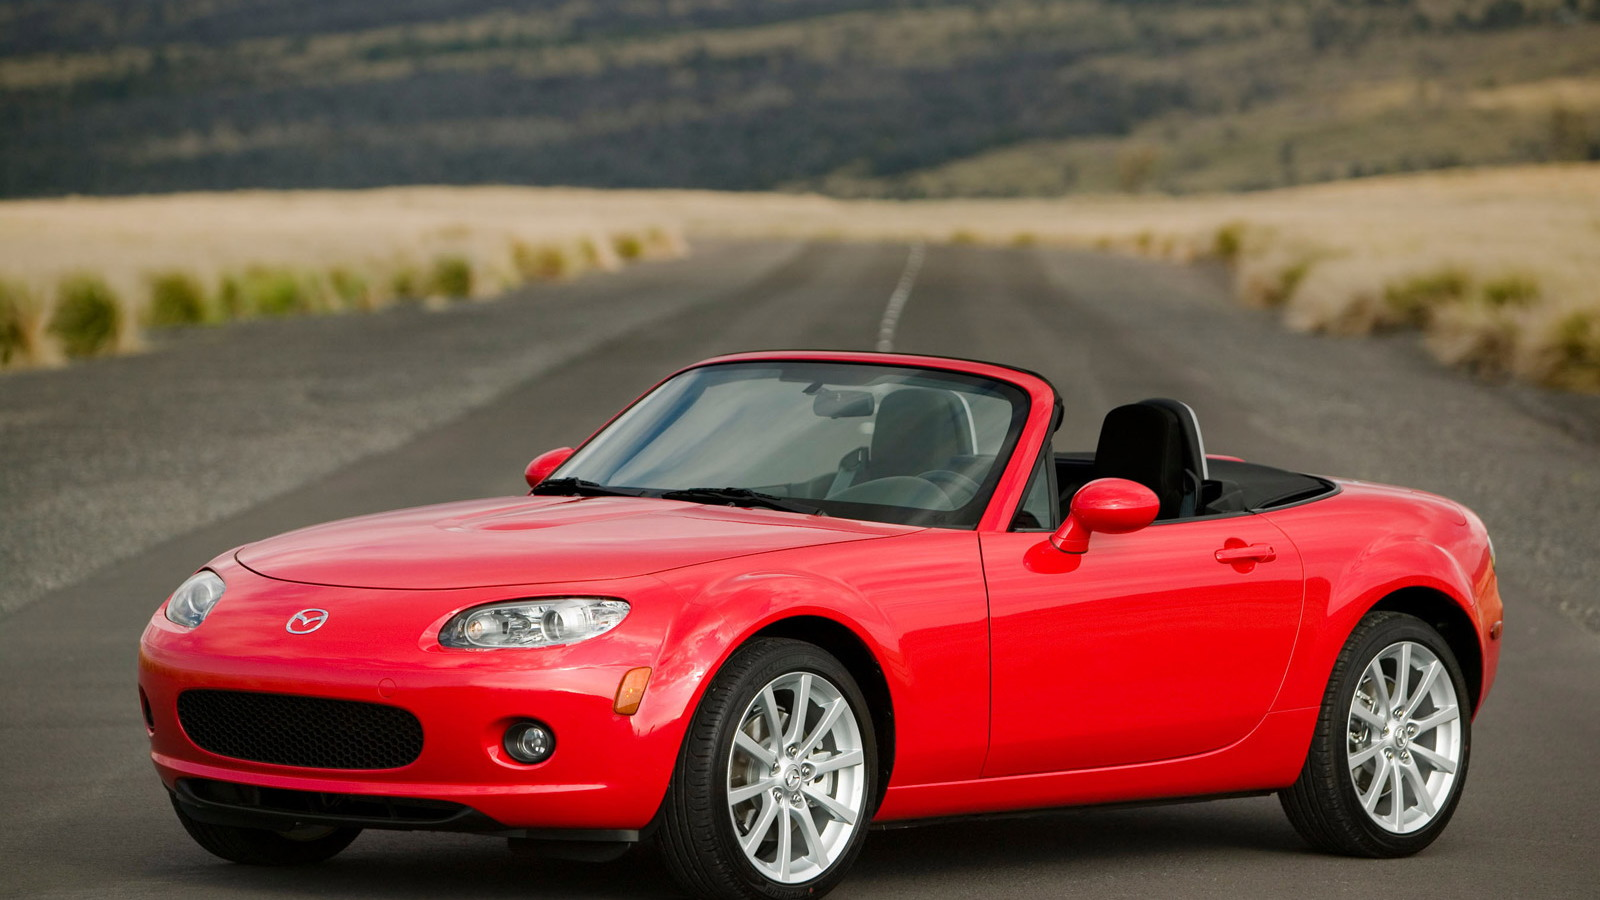 Third-gen Mazda MX-5 Miata, launched in 2005